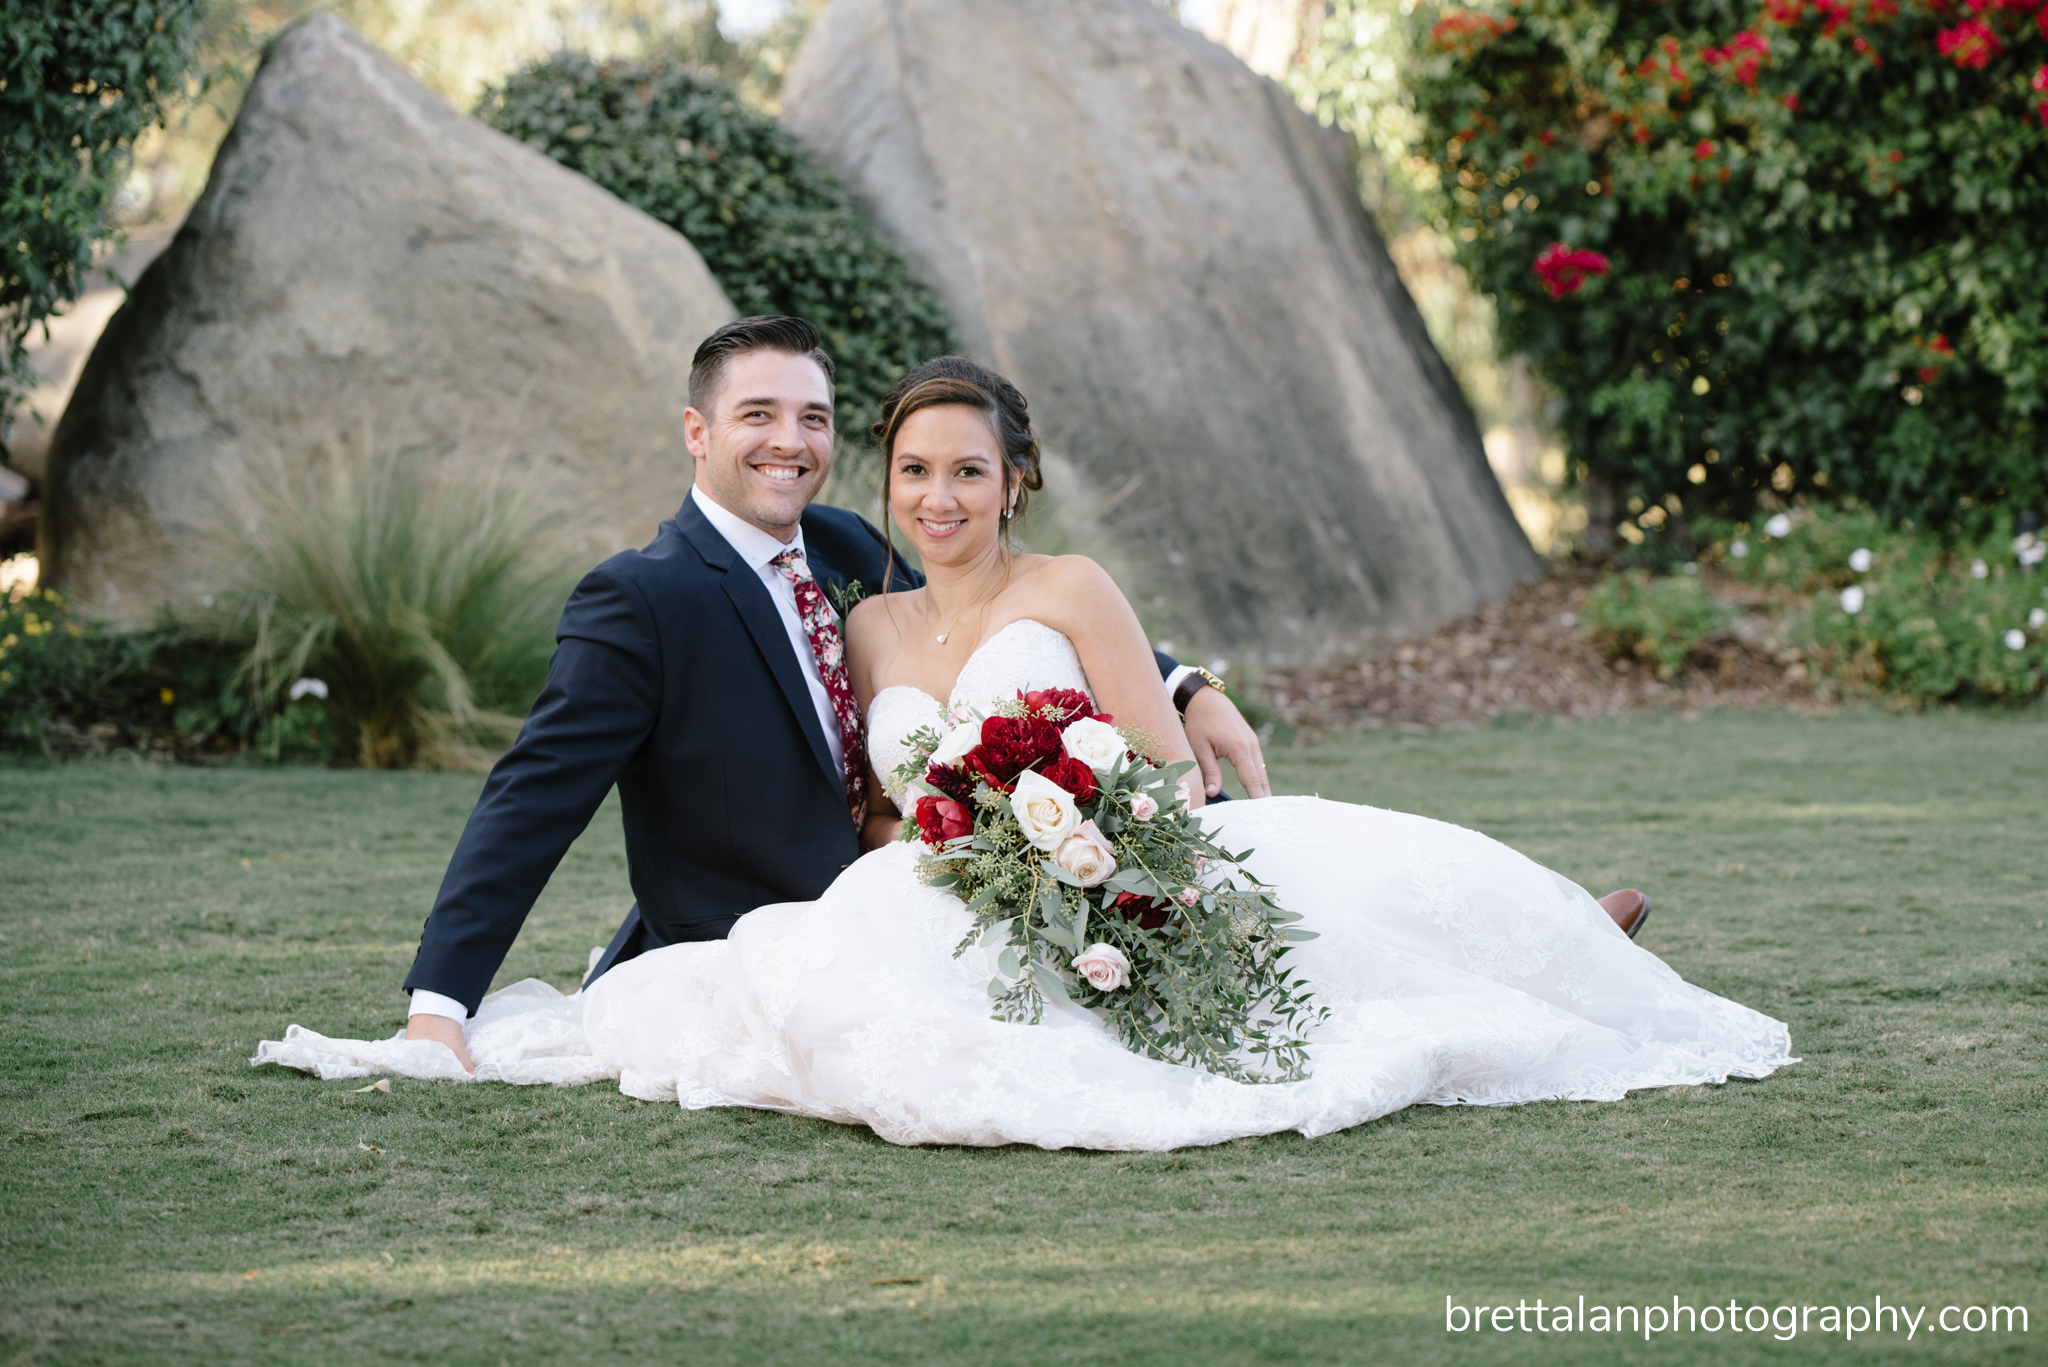 San Diego Photographer Videographer Weddings Families